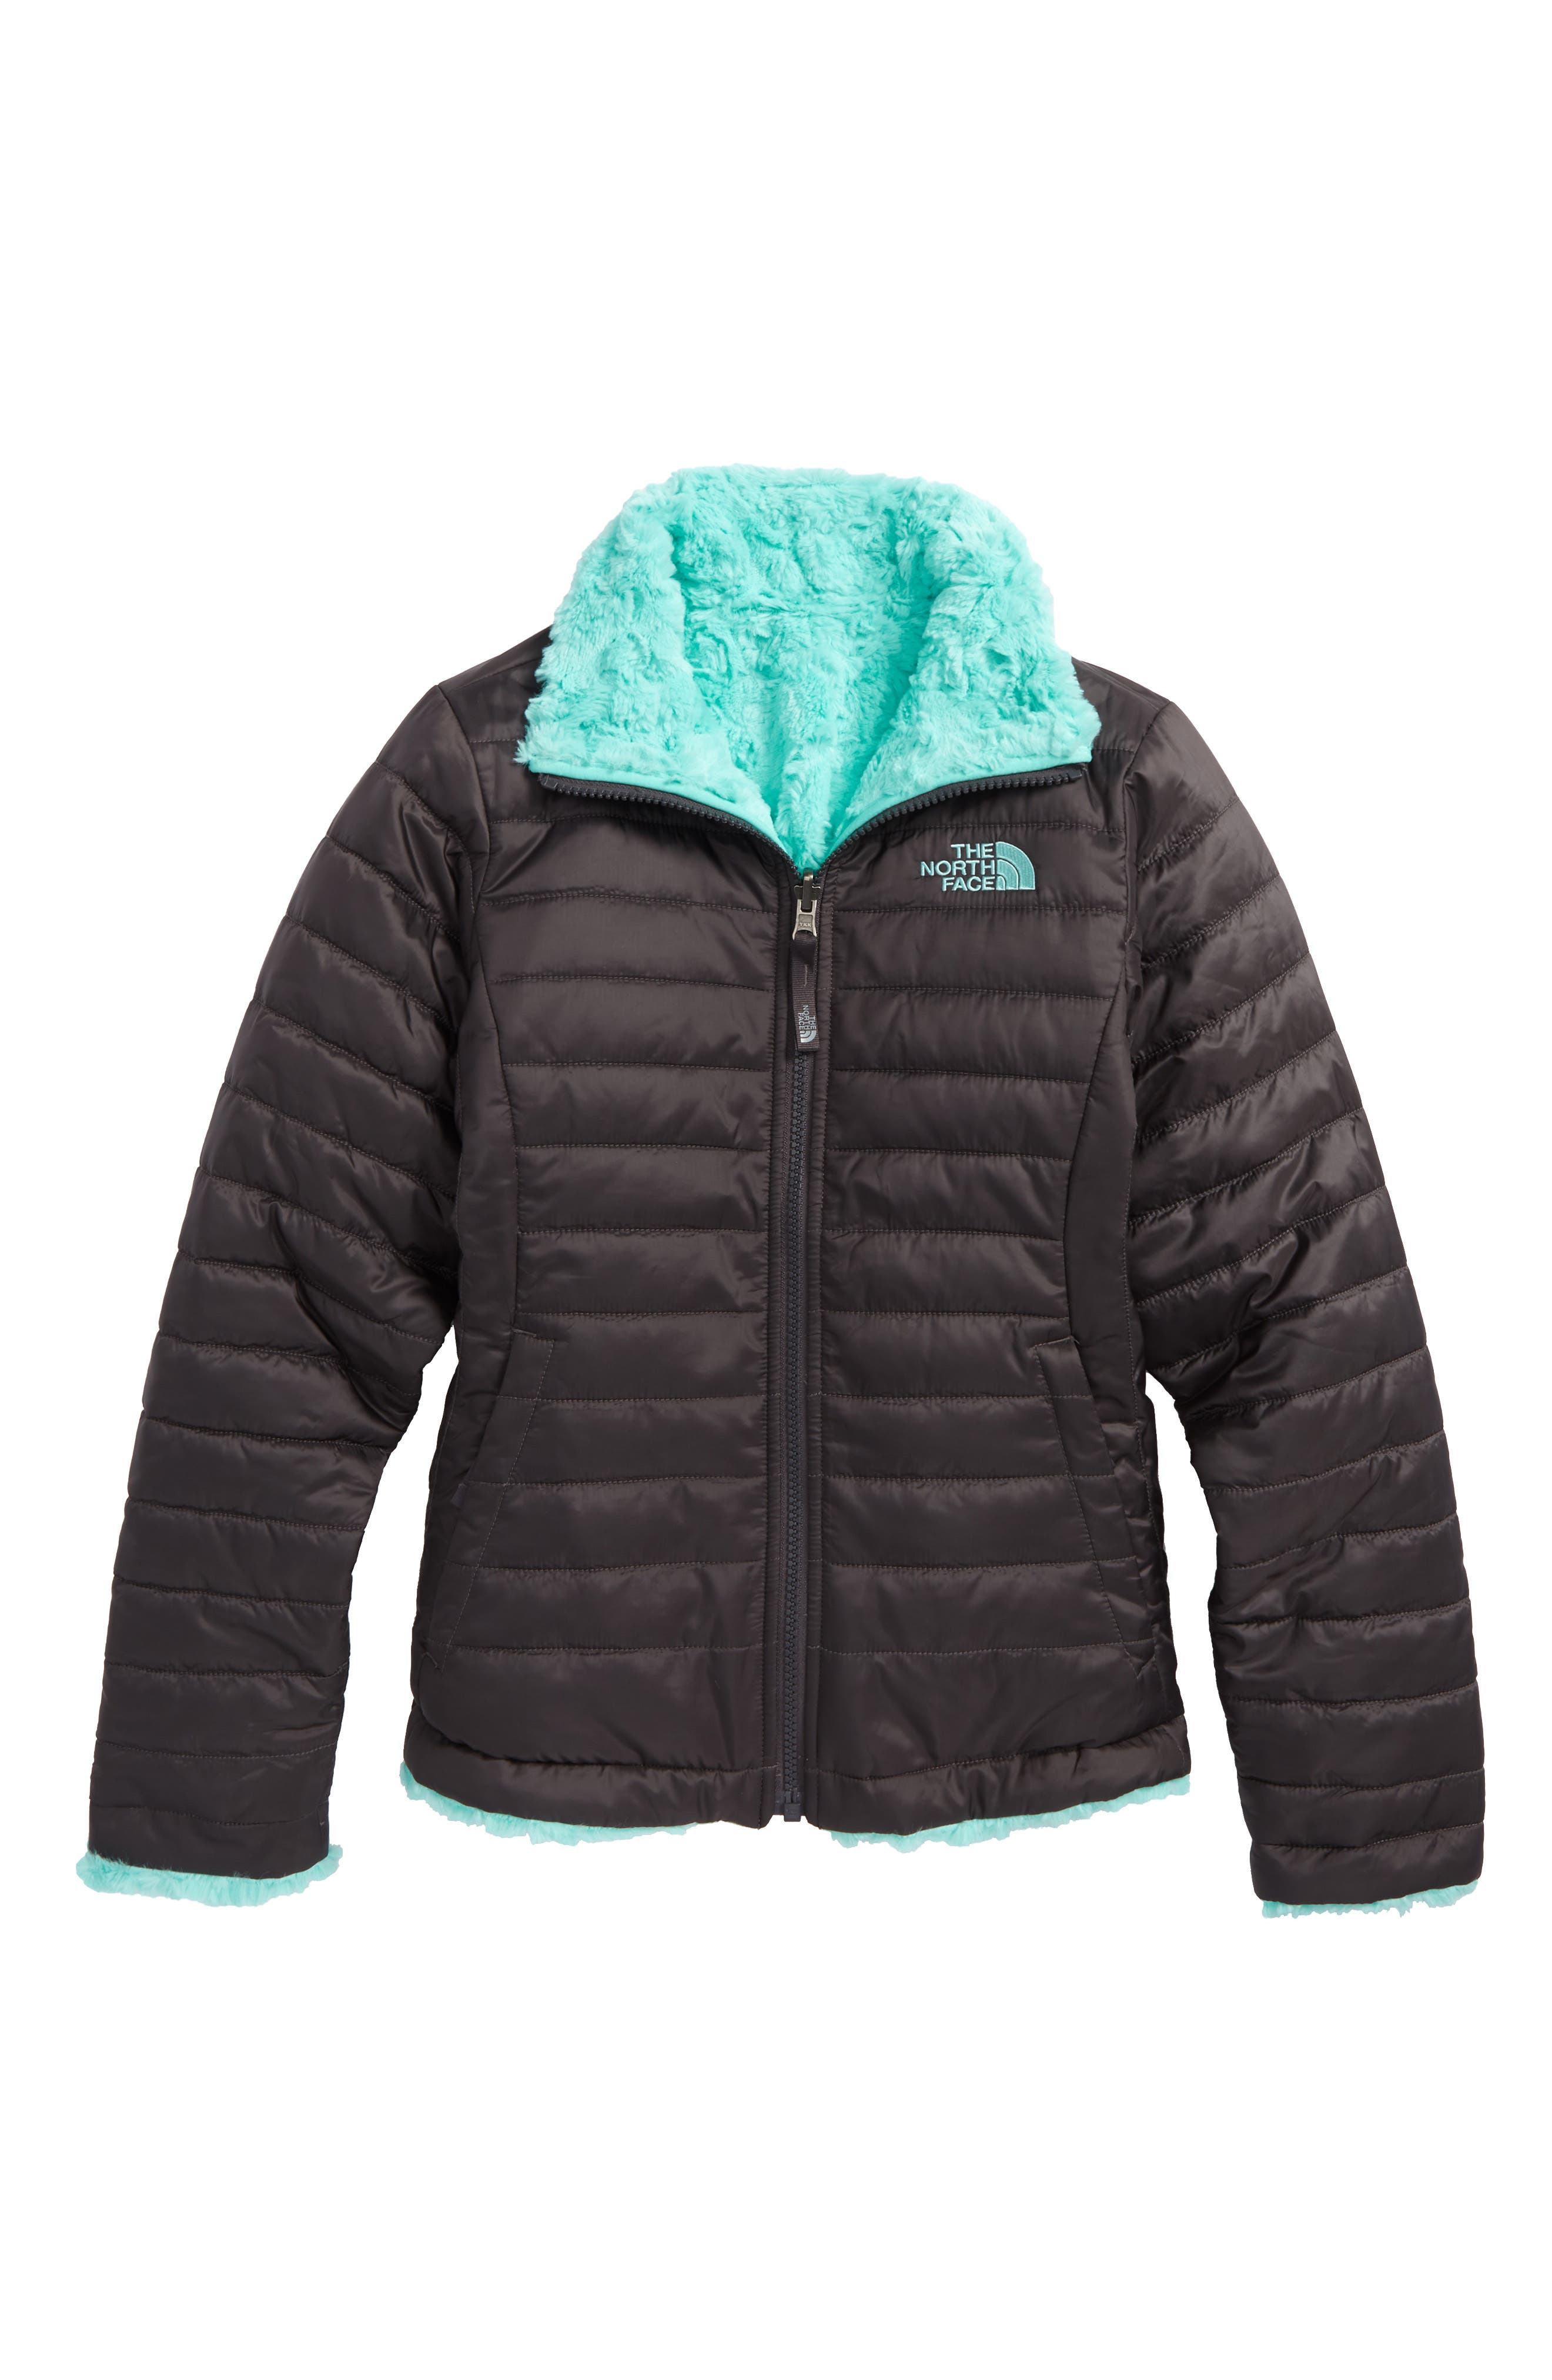 Mossbud Swirl Reversible Water Repellent Jacket,                         Main,                         color, GRAPHITE GREY/ MINT BLUE